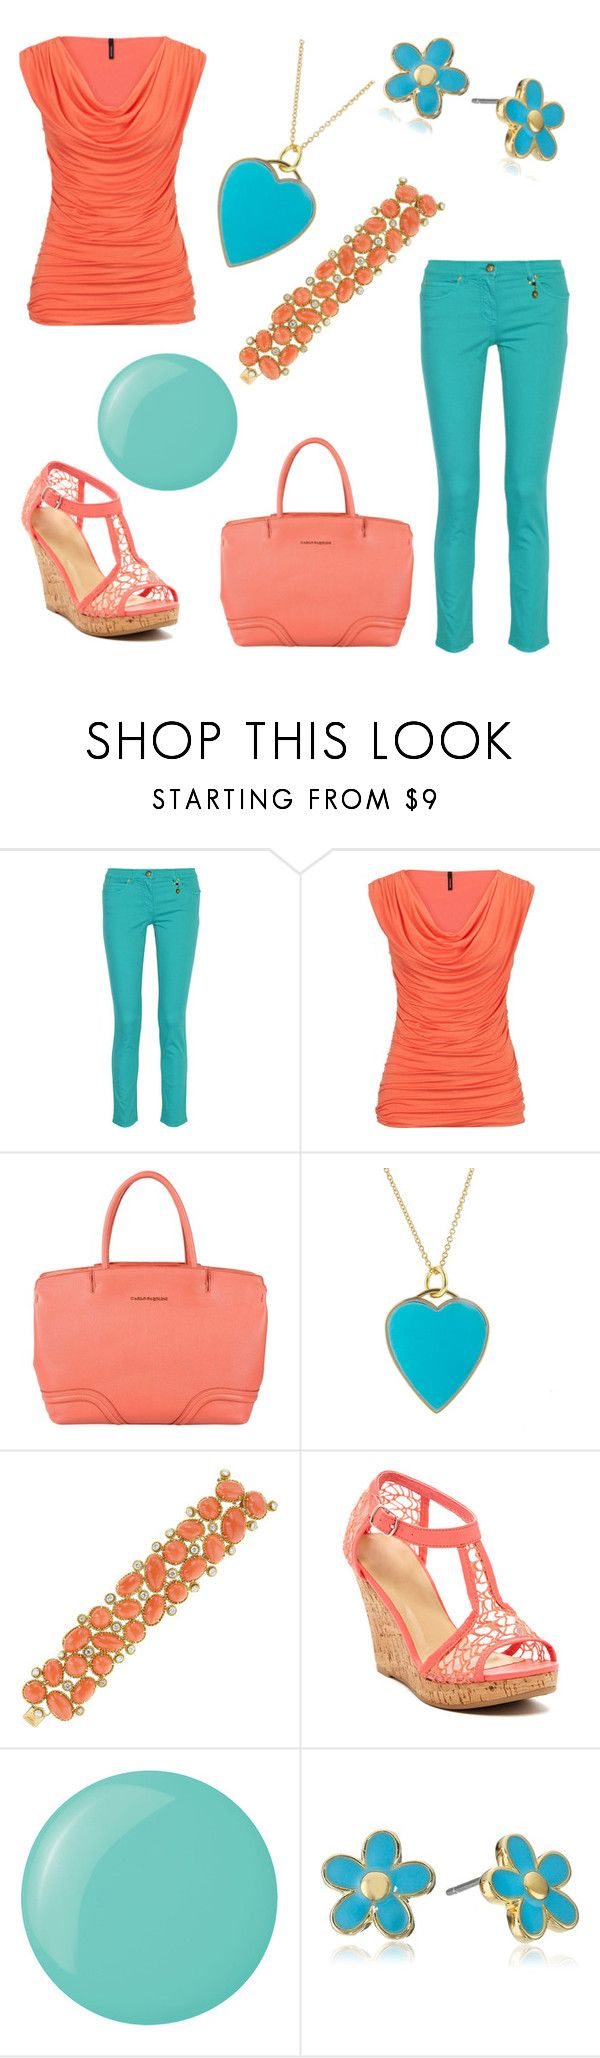 """Movie Date Outfit 44 - Ella"" by office-girl ❤ liked on Polyvore featuring Versace, maurices, Carlo Pazolini, Jennifer Meyer Jewelry, Van Cleef & Arpels, Kiss & Tell, Essie and Marc by Marc Jacobs"